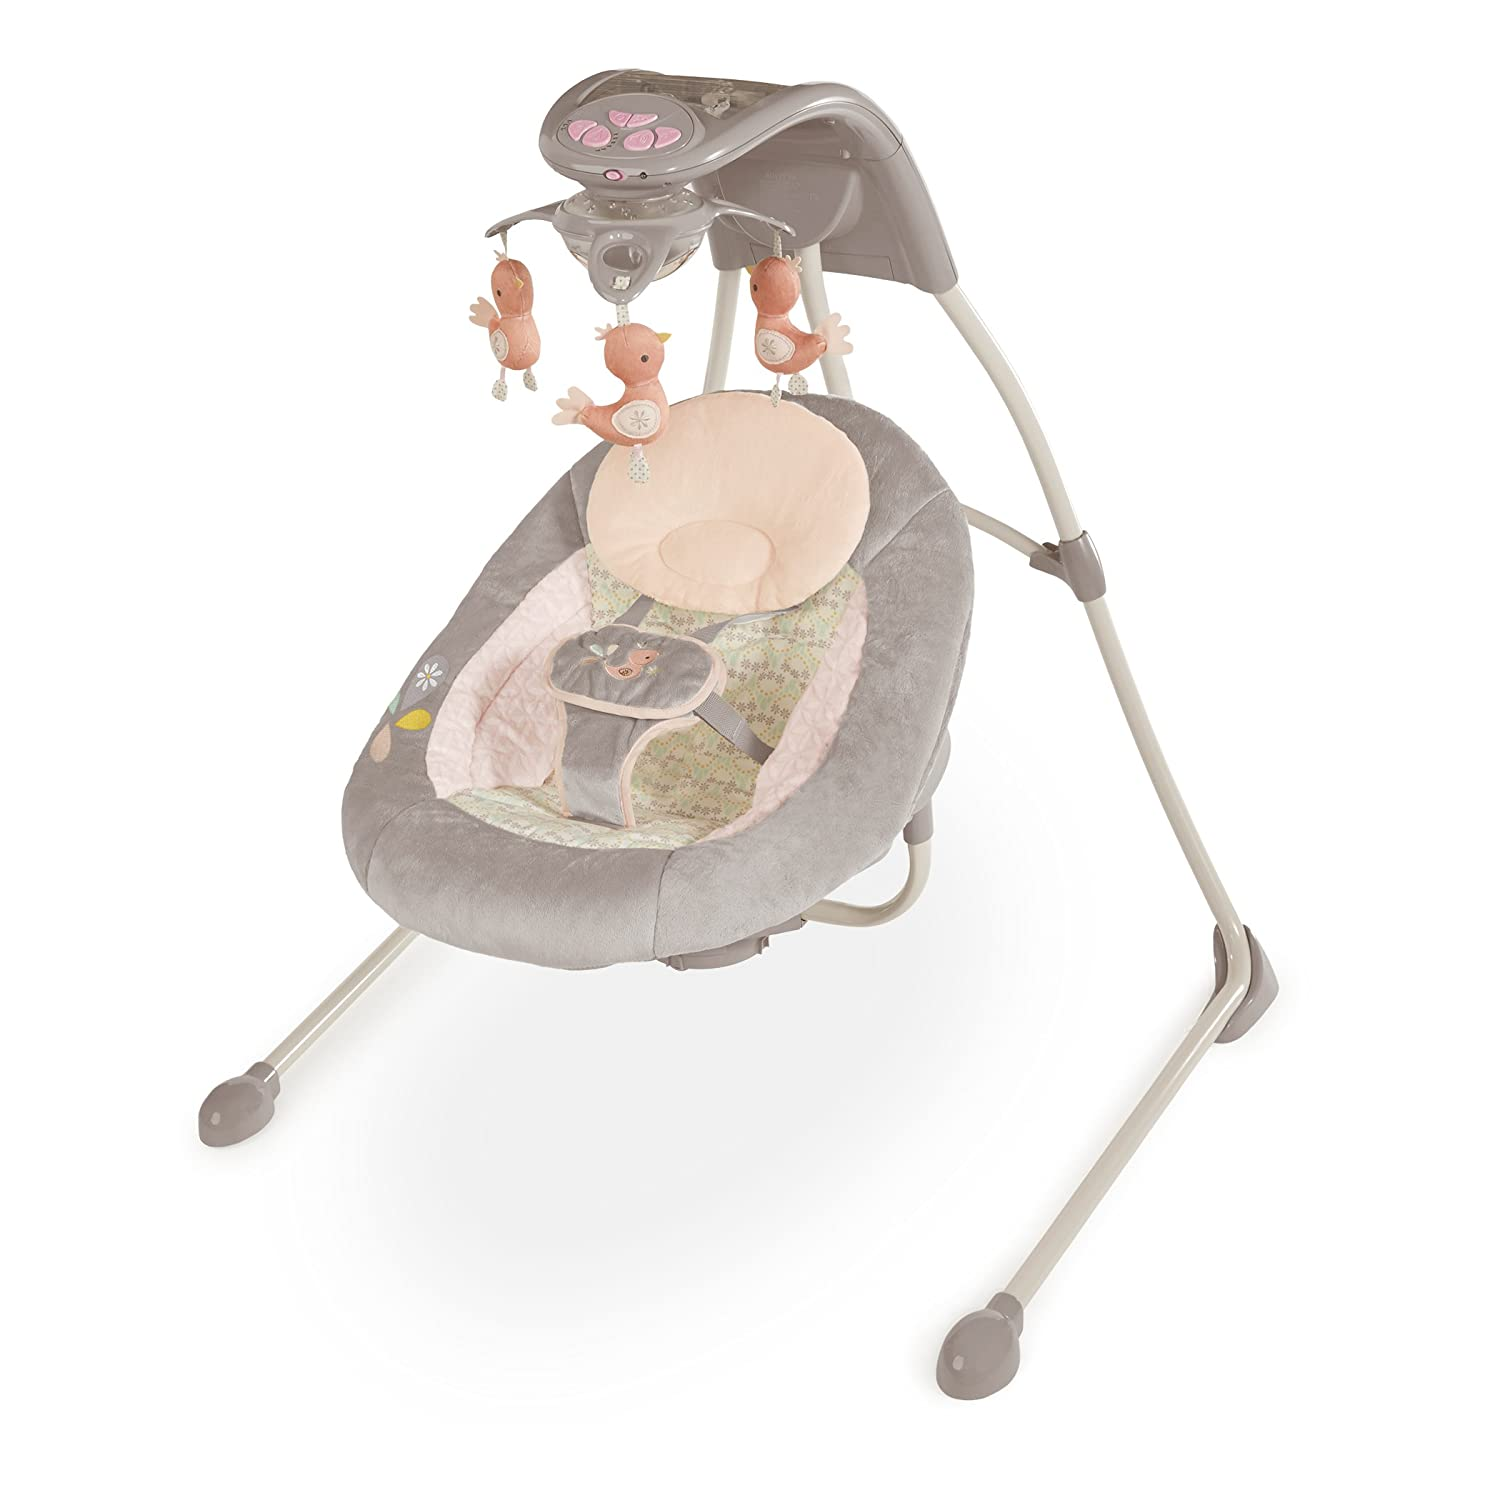 ca347e4f9 Amazon.com : Ingenuity Inlighten Cradling Swing : Baby